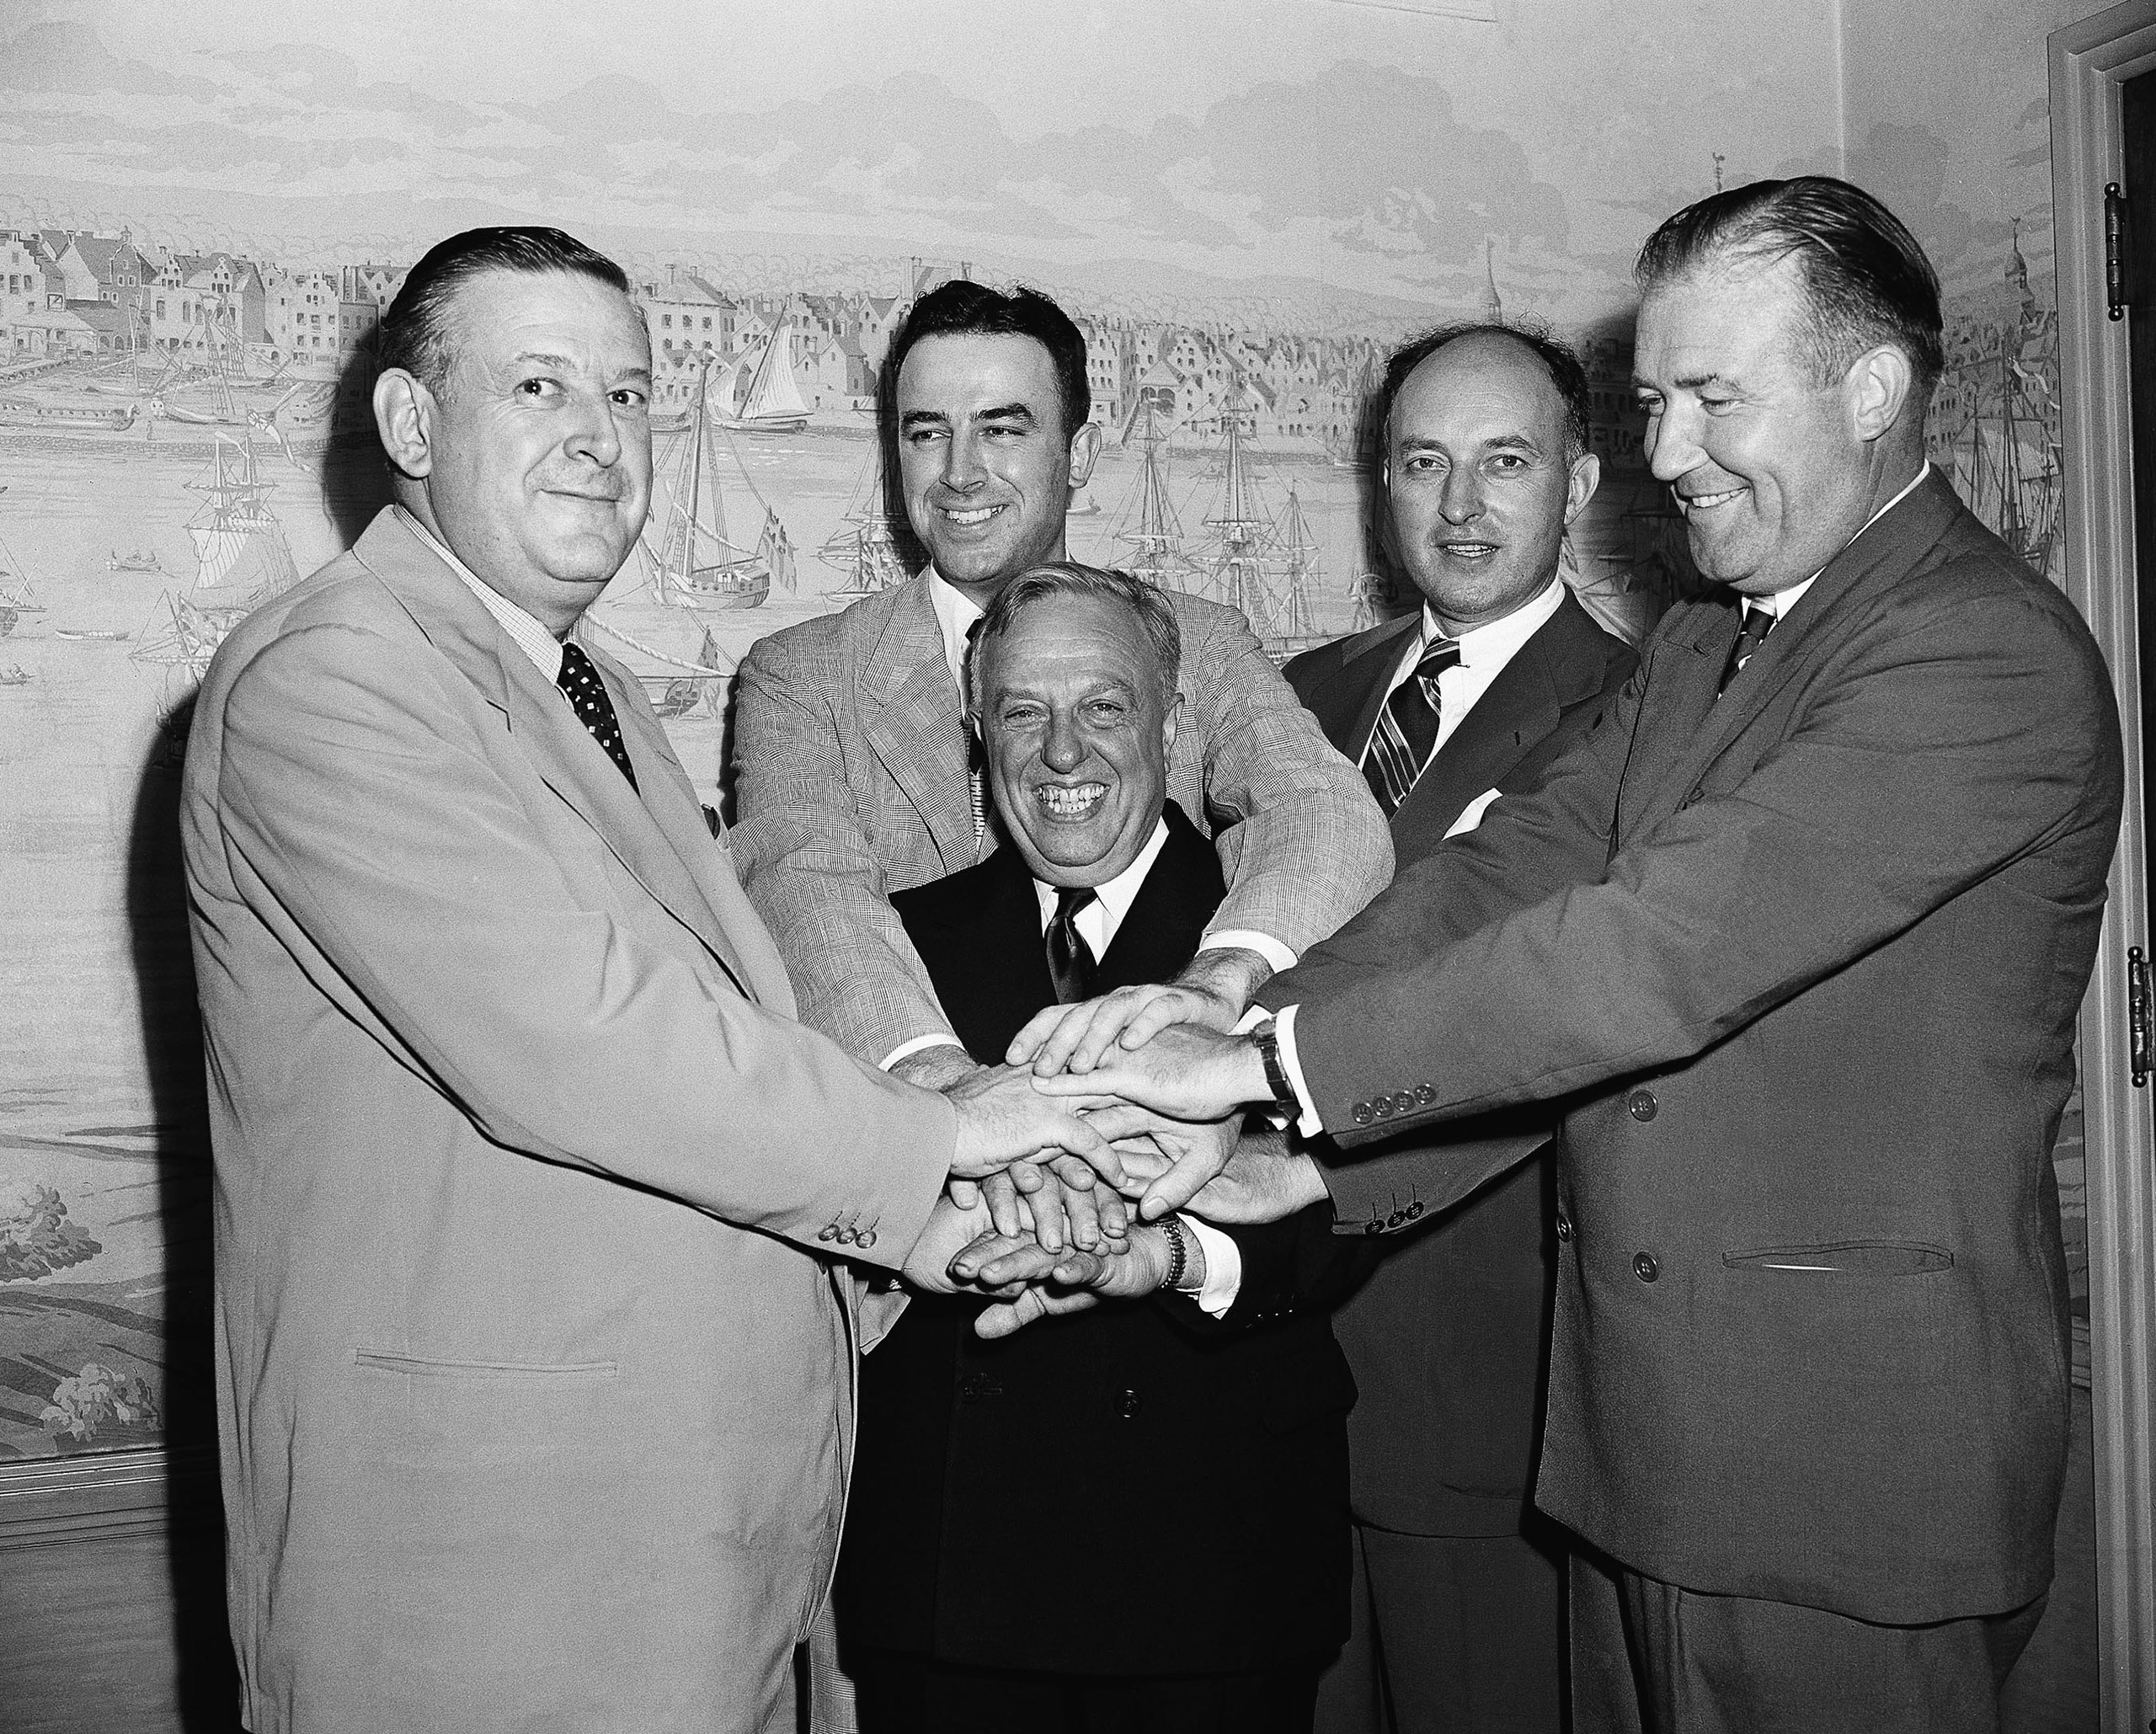 Representatives of the National Basketball League and Basketball Association of America, shake hands after agreeing to a merger of the two circuits into an 18-team organization to be known as the National Basketball Association, Aug 3, 1949, New York. Grouped around the smiling Maurice Podoloff, center, are left to right: Ike Duffey, Leo Ferris, Ned Irish, and Walter Brown.